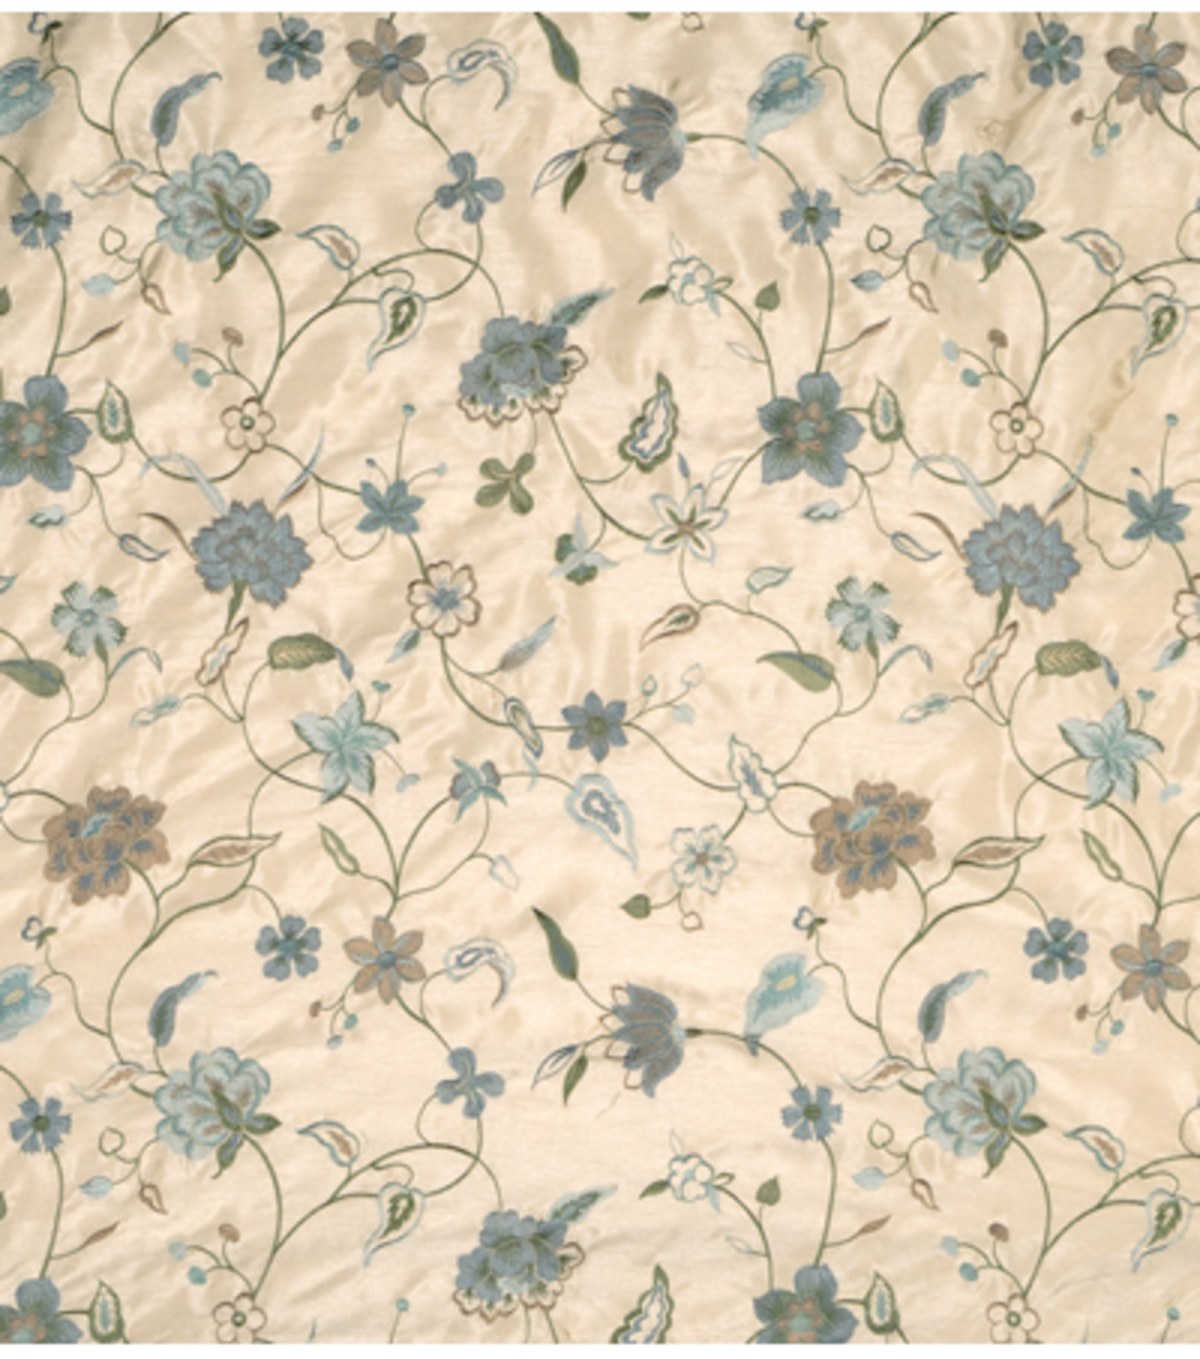 Home Decor 8\u0022x8\u0022 Fabric Swatch-Jaclyn Smith Wexford-Mist